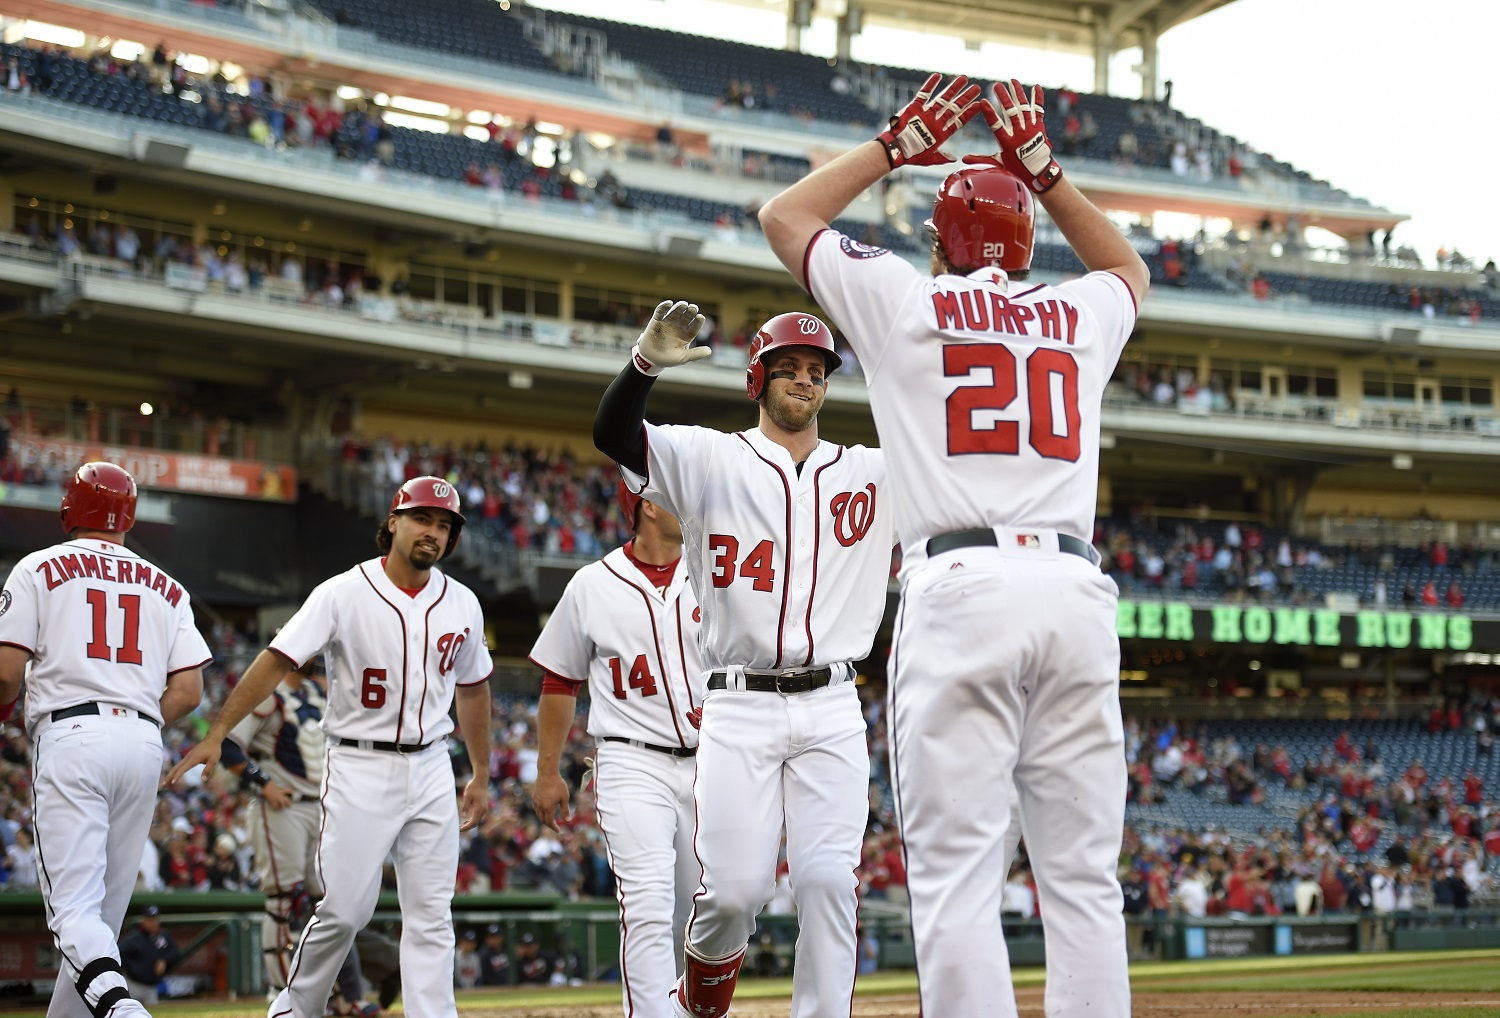 What does Nats' hot start say about the team?